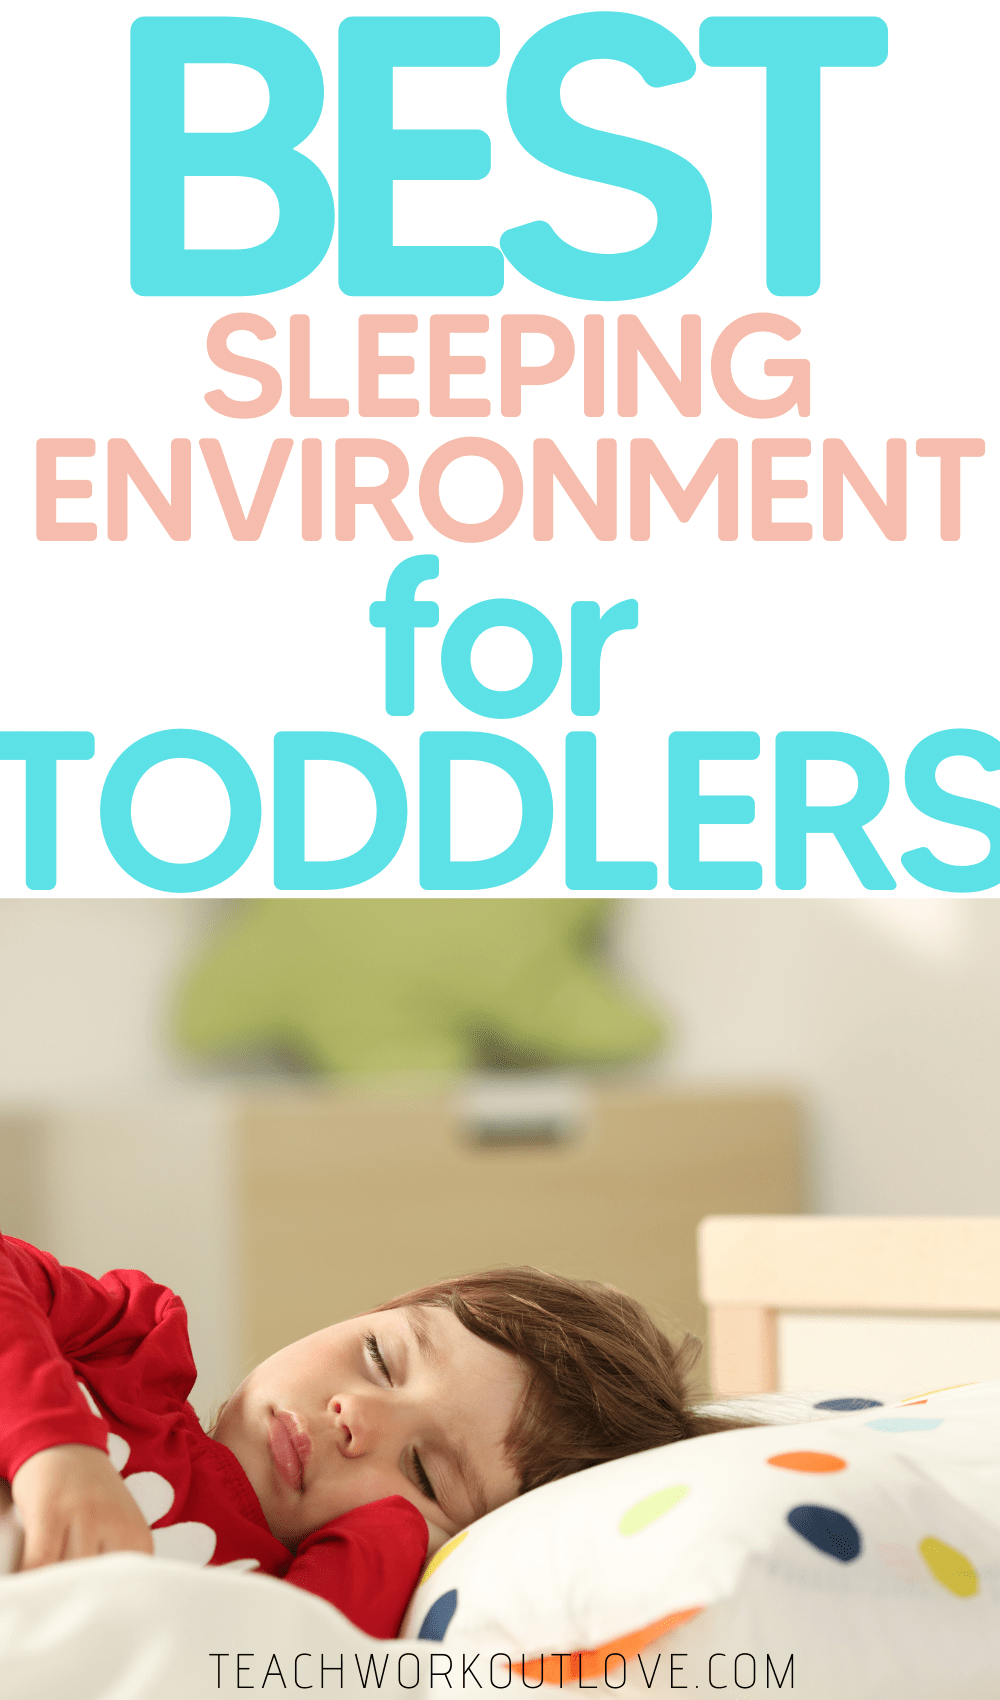 Is your toddler struggling to fall asleep? Learn how to set up the best sleeping environment for toddlers right away and get them sleeping.